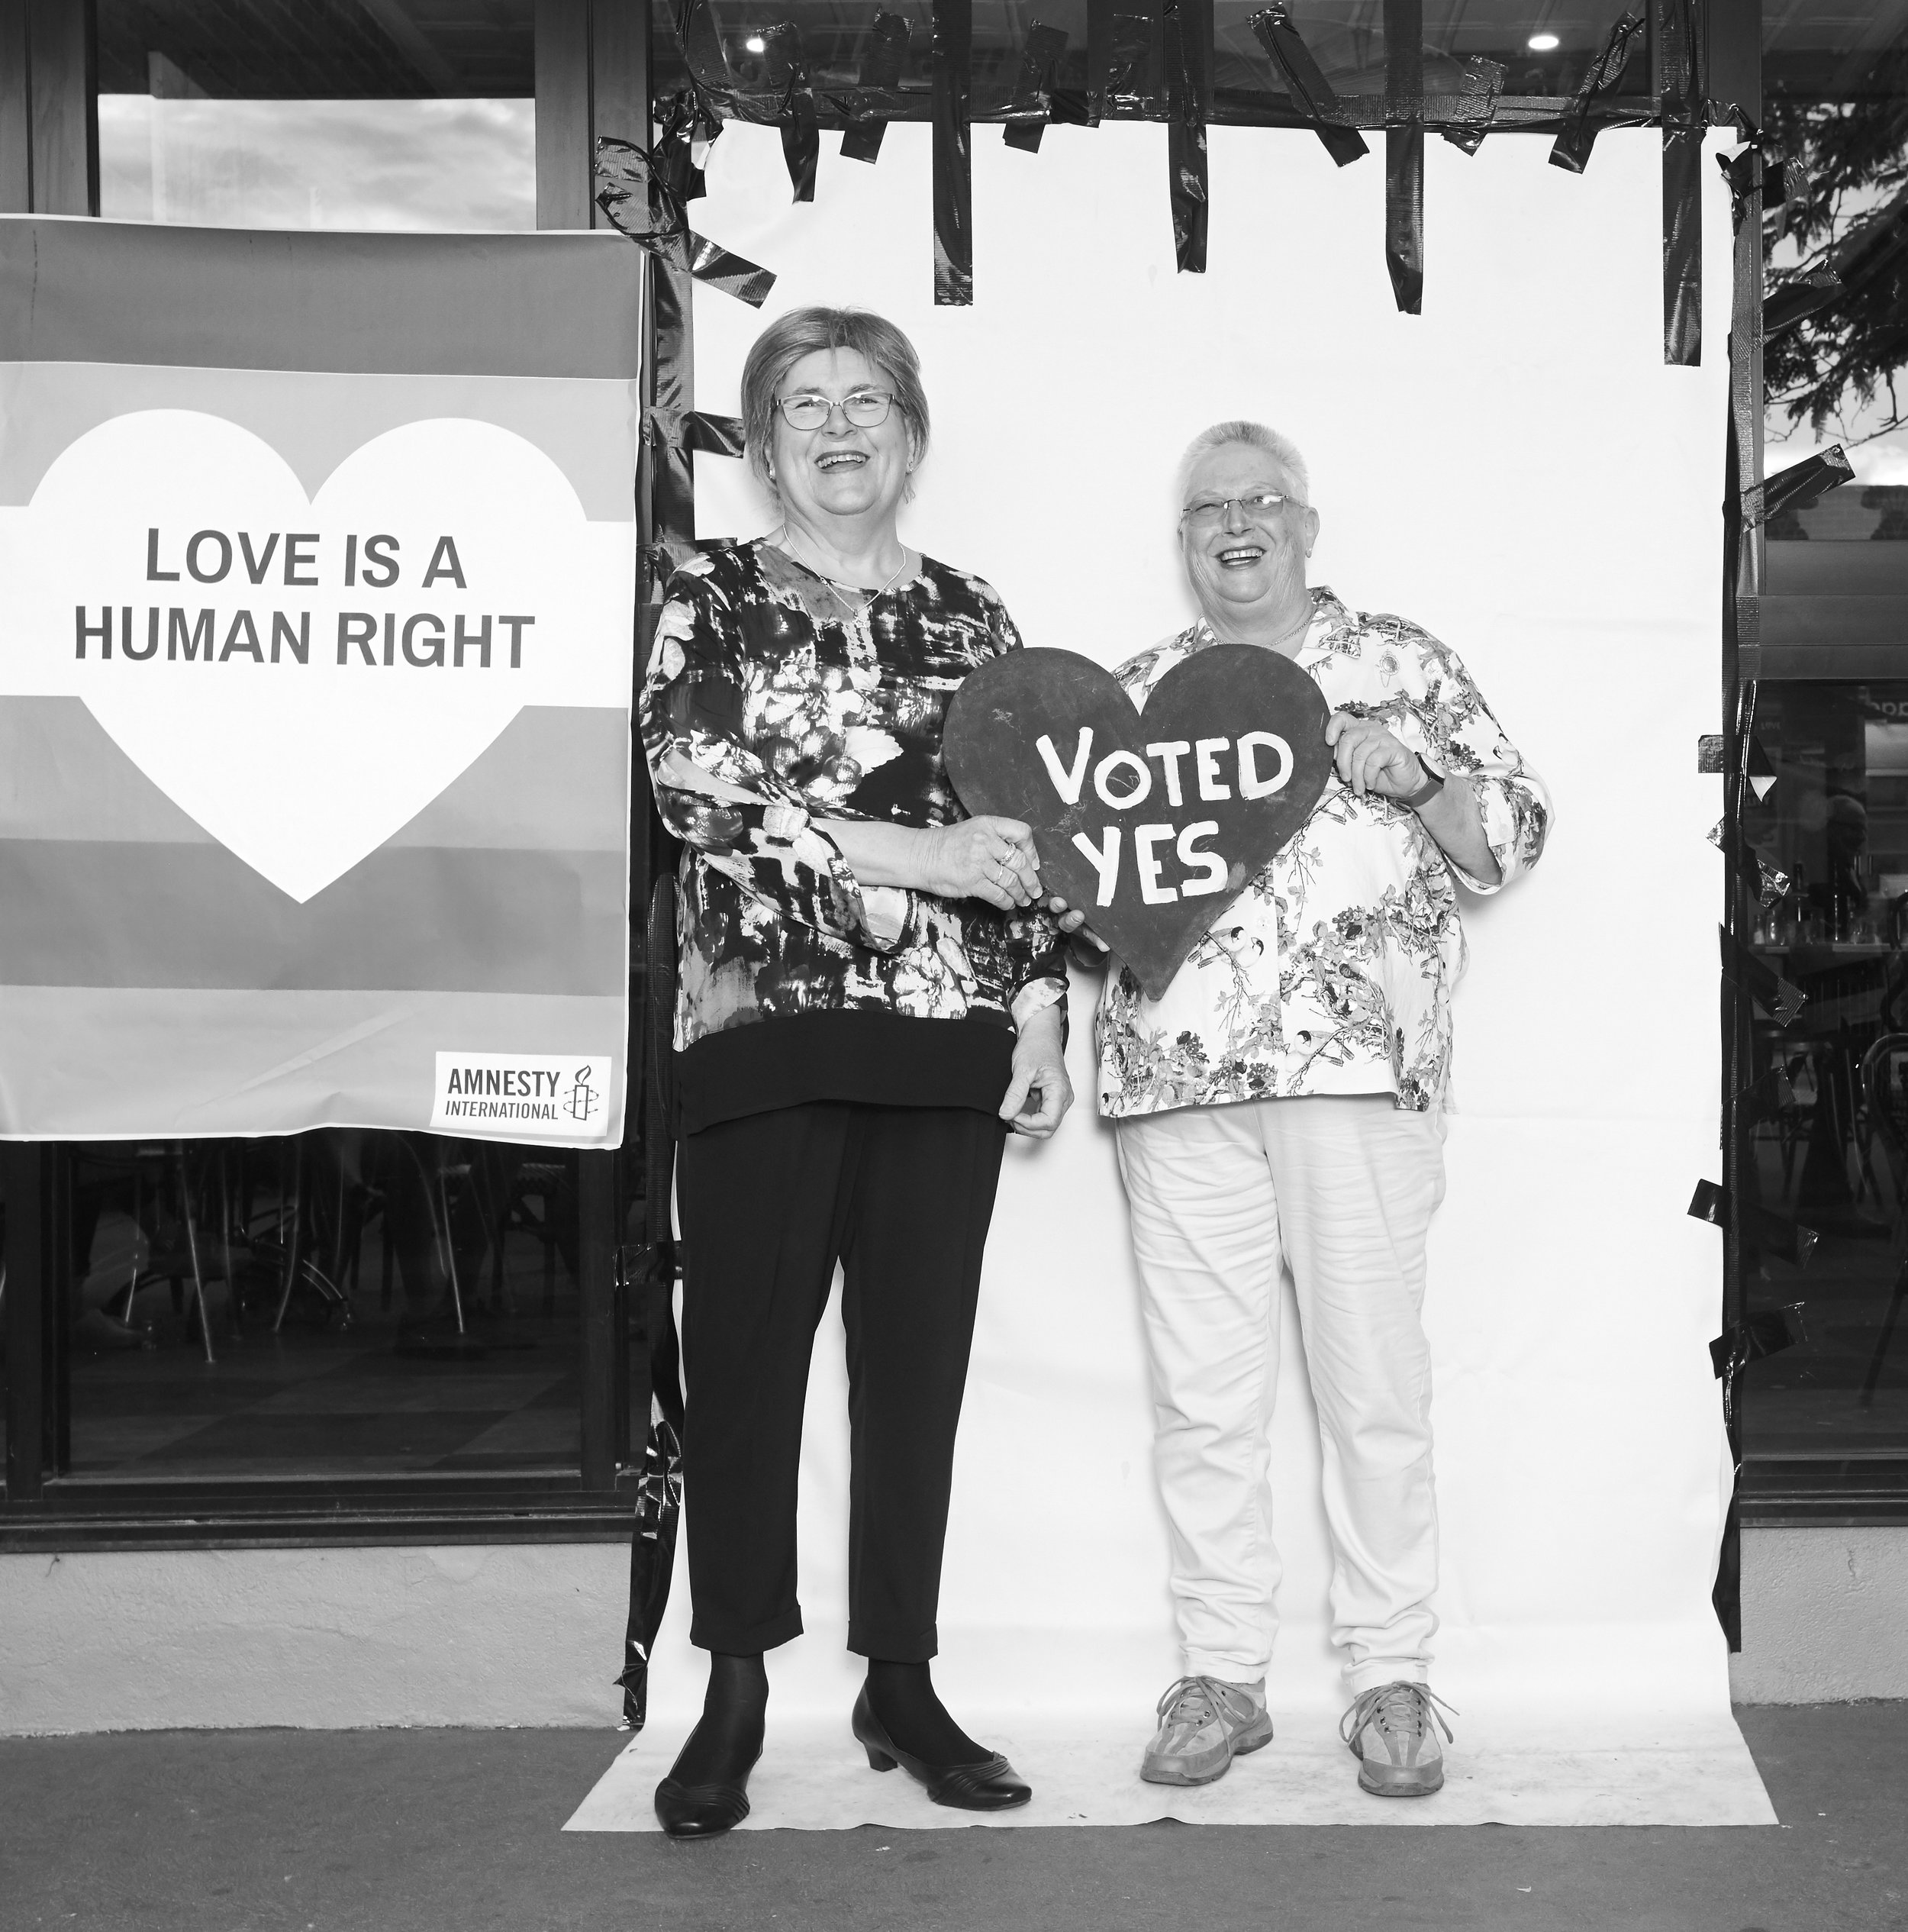 iDo Support Marriage Equality in Gippsland - 2 years ago I had a simple idea, photograph anyone in Gippsland who believe in the equal rights for ALL PEOPLE to marry the person they loved. Since then we have photographed over a 1000 Gippslanders. Raised over $5k, published a book, started a LGBQITA+ Youth Support group, A queer social club, a fund a pop up/in information center to run an amazing campaign over the 3 months of postal voting in the main street of my home town of Sale. All leading the day Australia Vote YES. Our country town community has seen the worse Australia has to offer, from the face of the national no campaign living in Sale, a victim of a hate crime and a news paper who couldn't keep it clean or balanced. We persisted not out of spite but LOVE! Thank you all who stood up to be counted 2, 10,20,50 years ago thank you to everyone who vote THANK YOU TO EVERYONE WHO FOUGHT FOR LOVE AND WON!